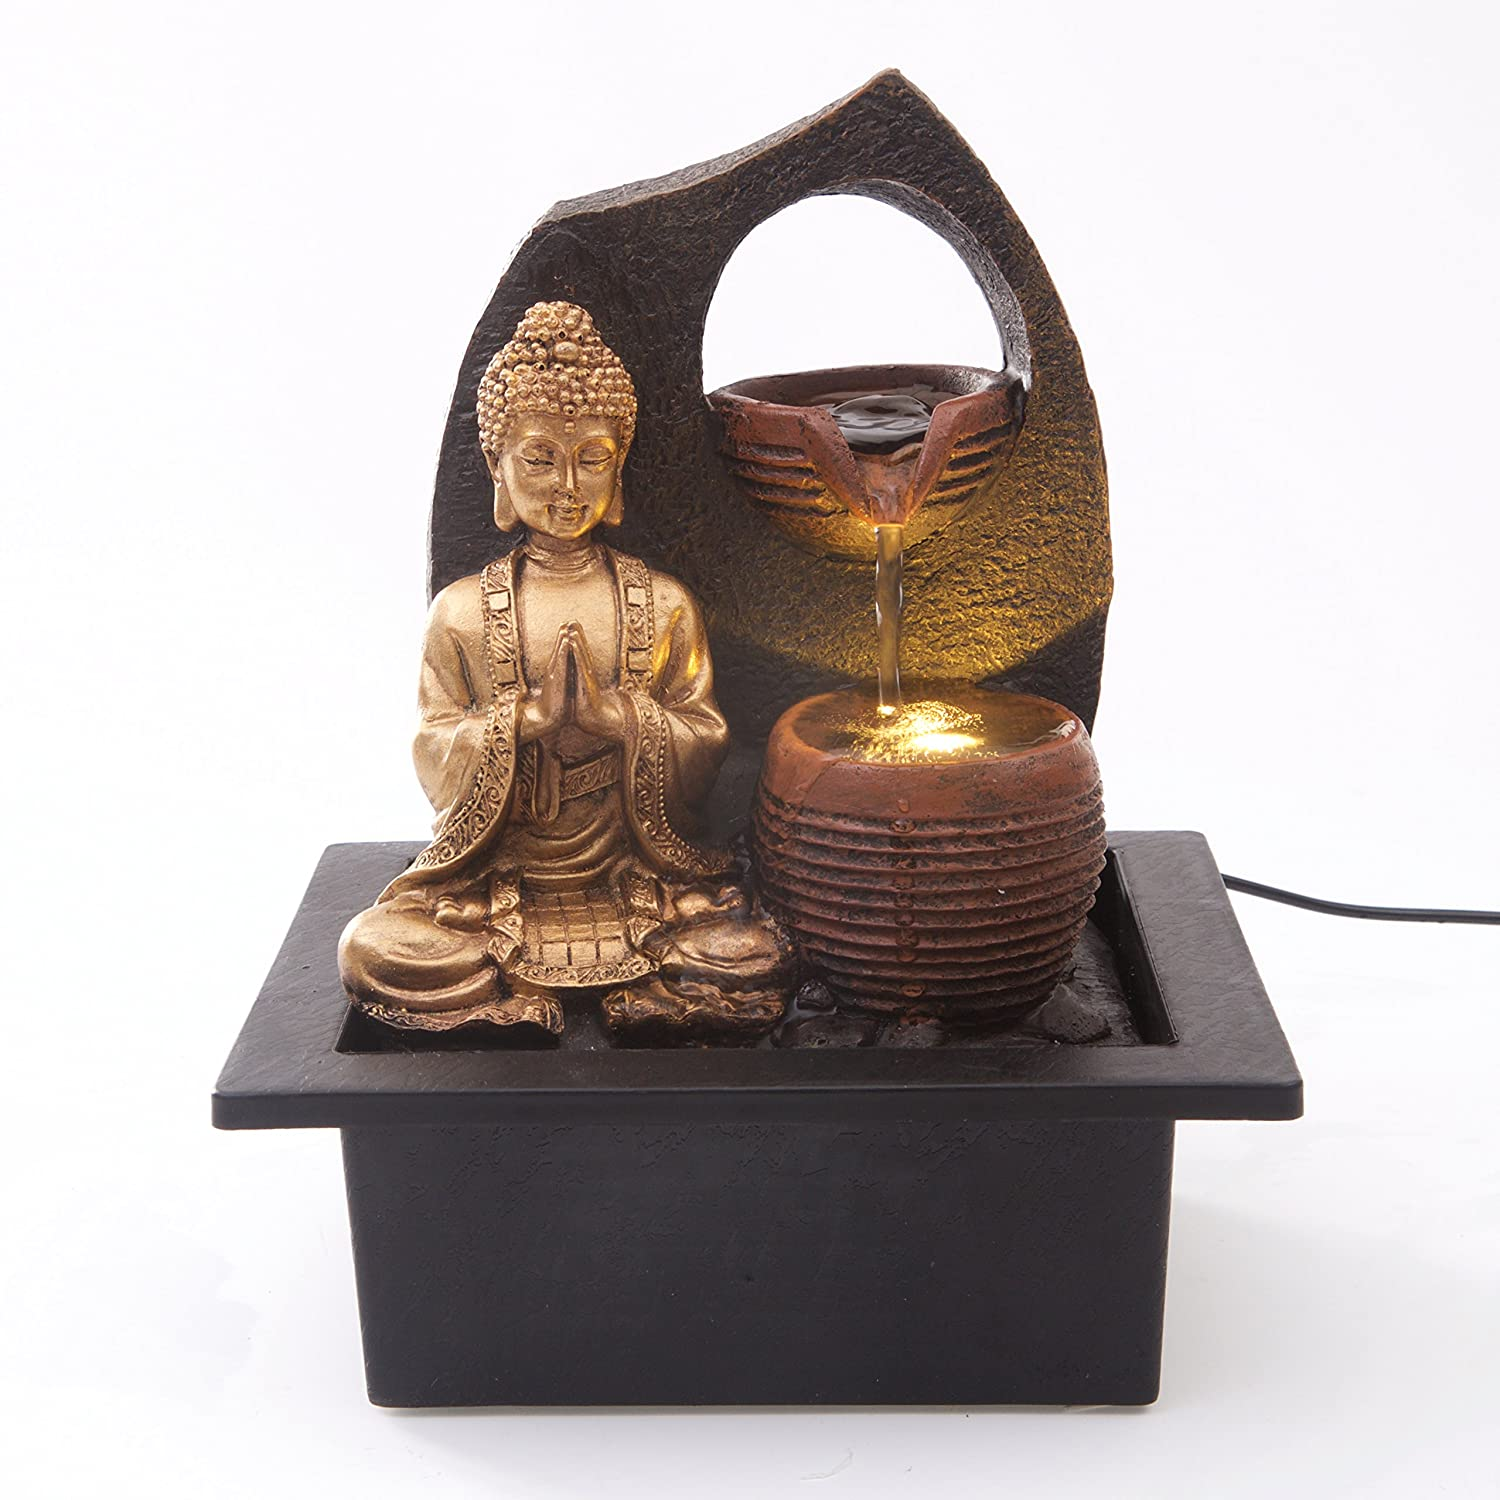 Golden Buddha with 2 Water Cups Indoor Water Fountain with LED Light | Size 21 * 17.5 * 24 Cm | 3 Pin UK Plug Included |